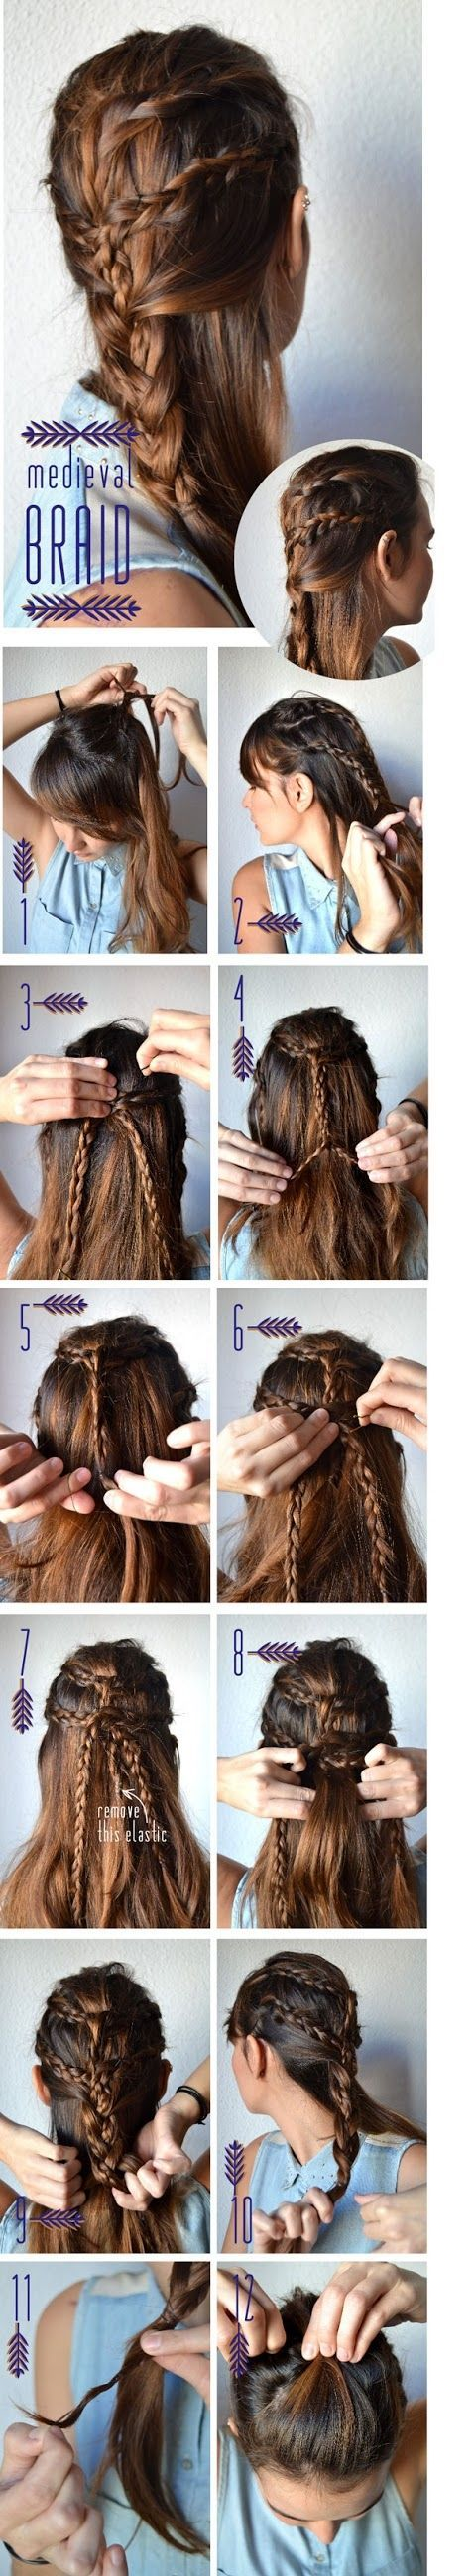 15 Stylish Mermaid Hairstyles to Pair Your Looks | Latest Bob Hairstyles | Page ...